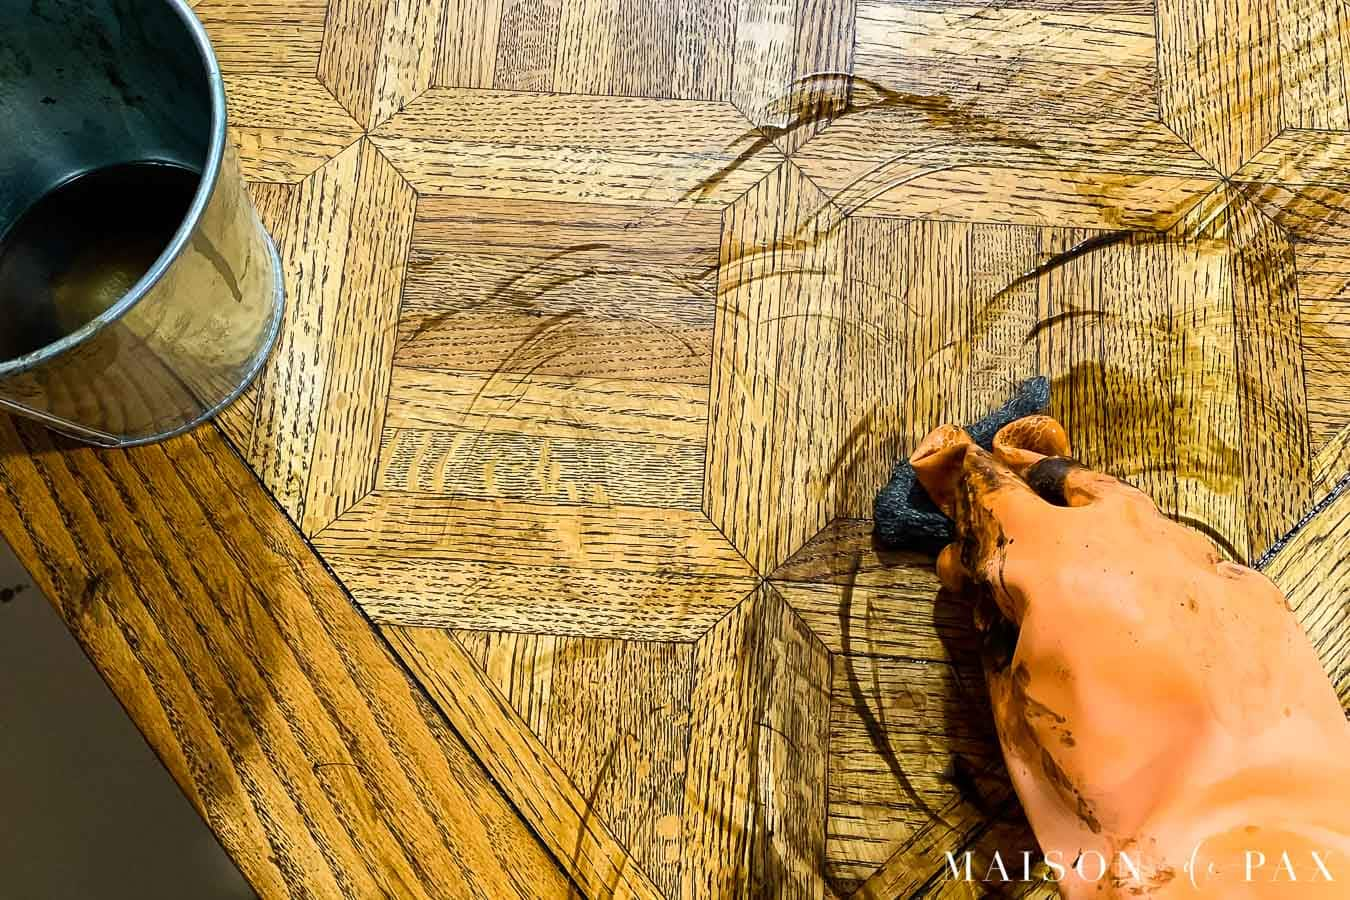 applying chemical stripper to remove old wood stain and varnish | Maison de Pax